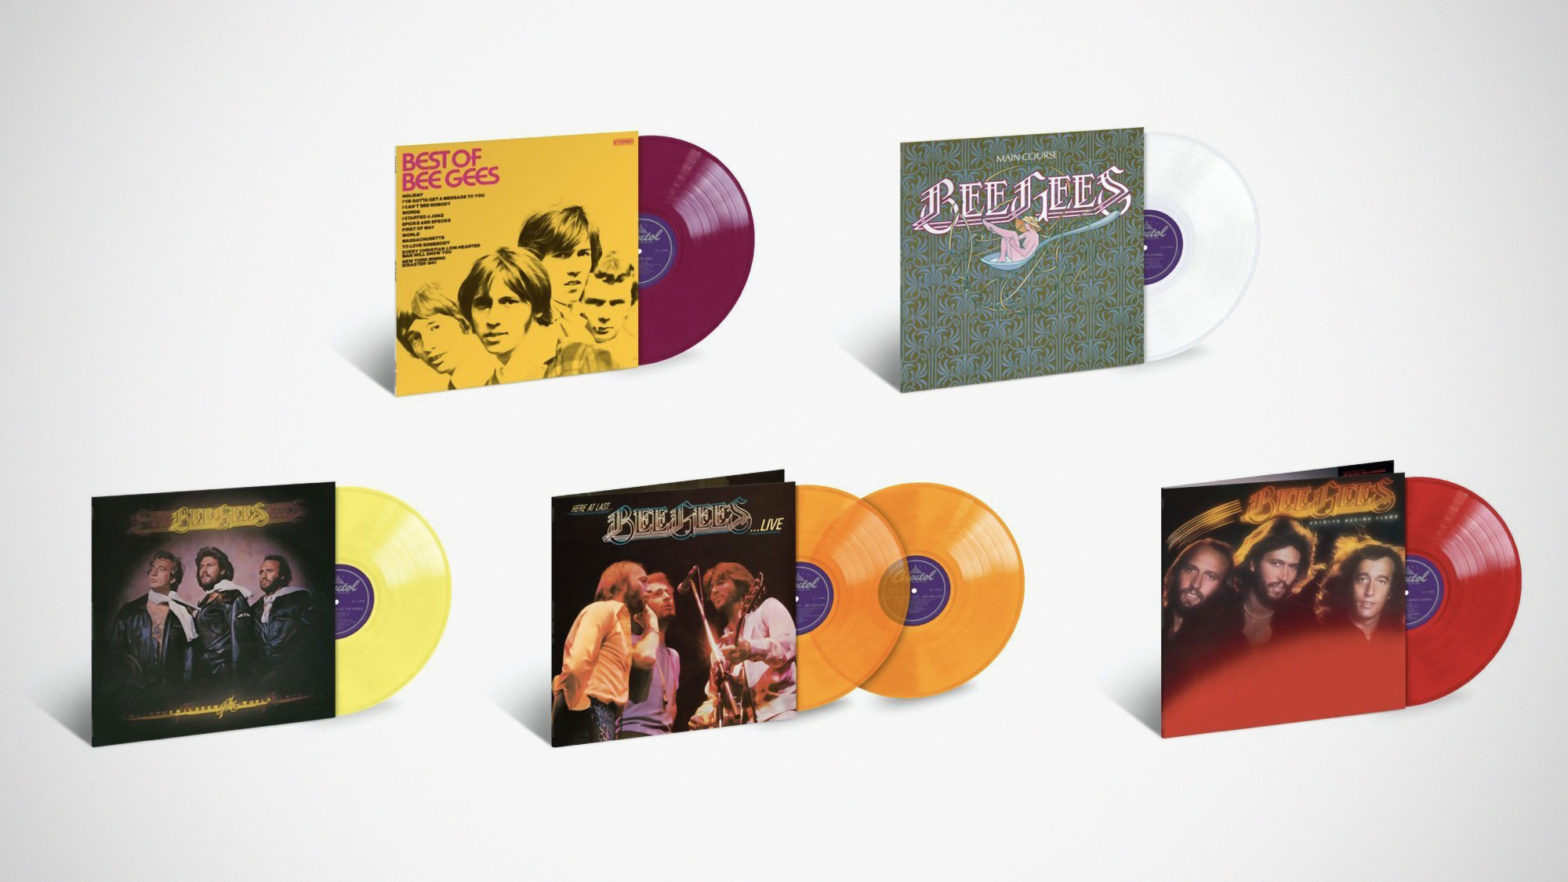 Capitol/UMe Bee Gees Remastered LPs